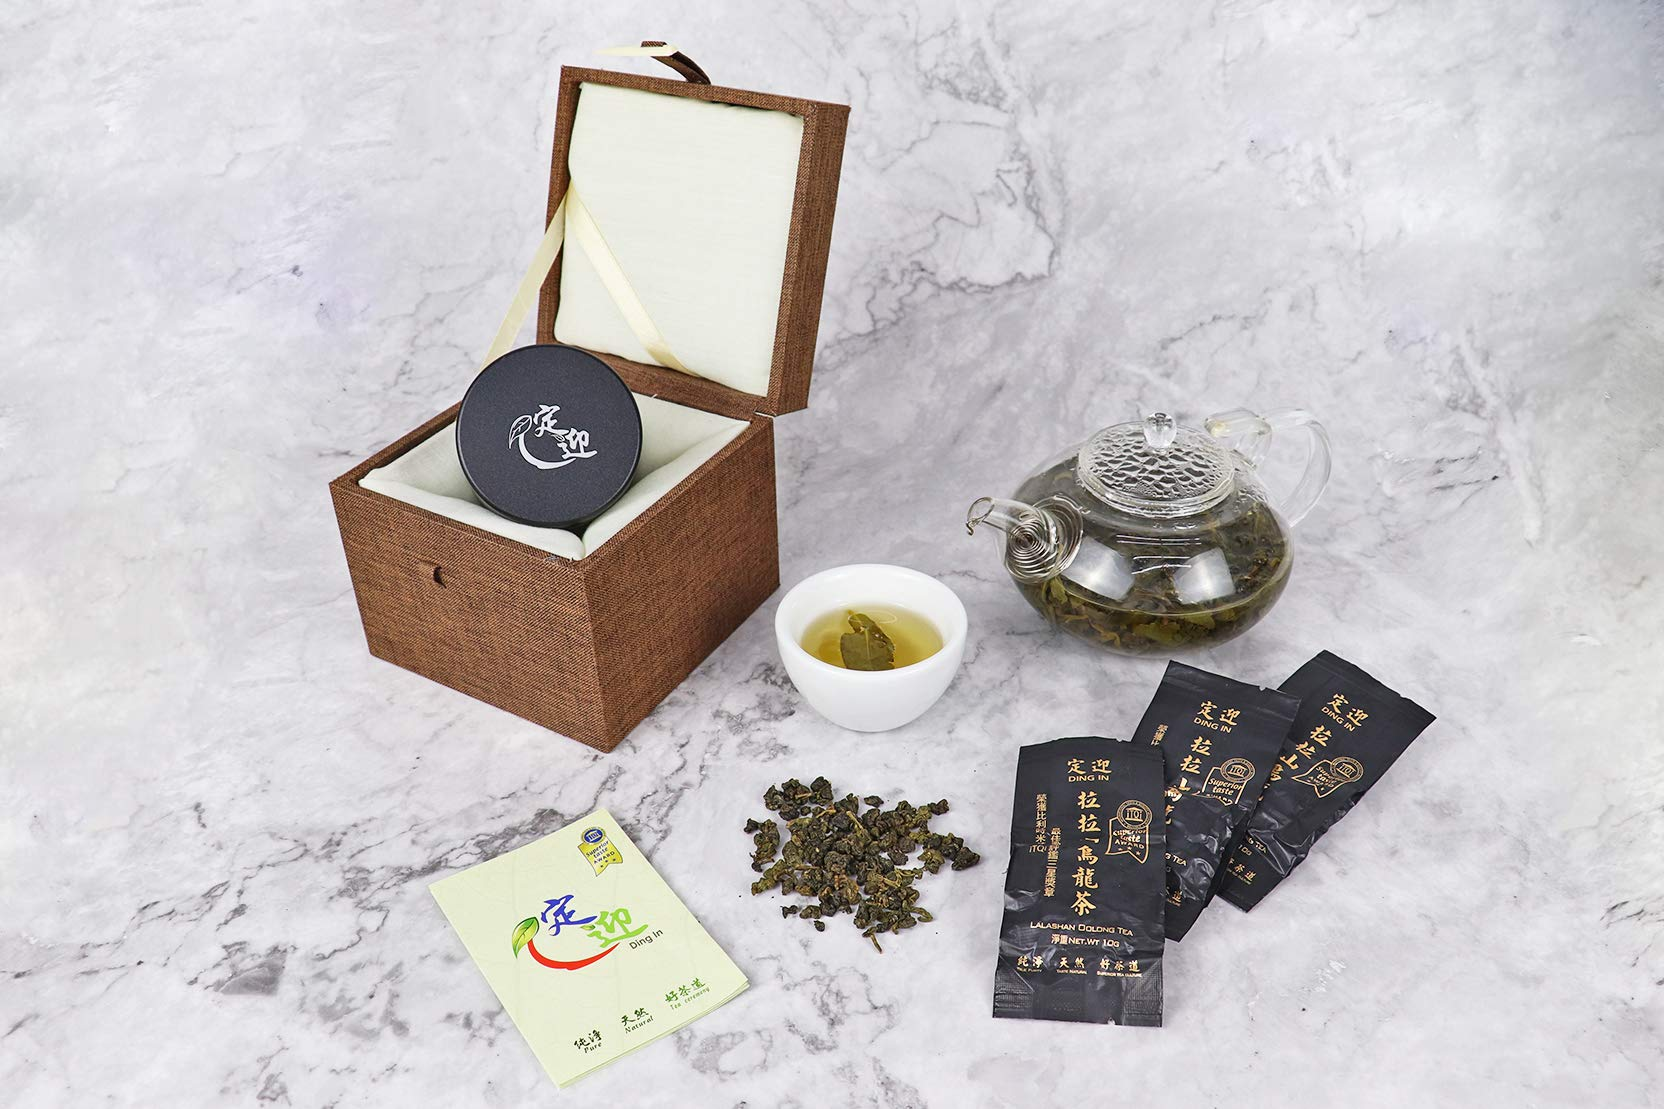 DING IN Lalashan Oolong Tea Horn buckle wooden box 10g3bag/can X2 by Ding In ltd. (Image #3)